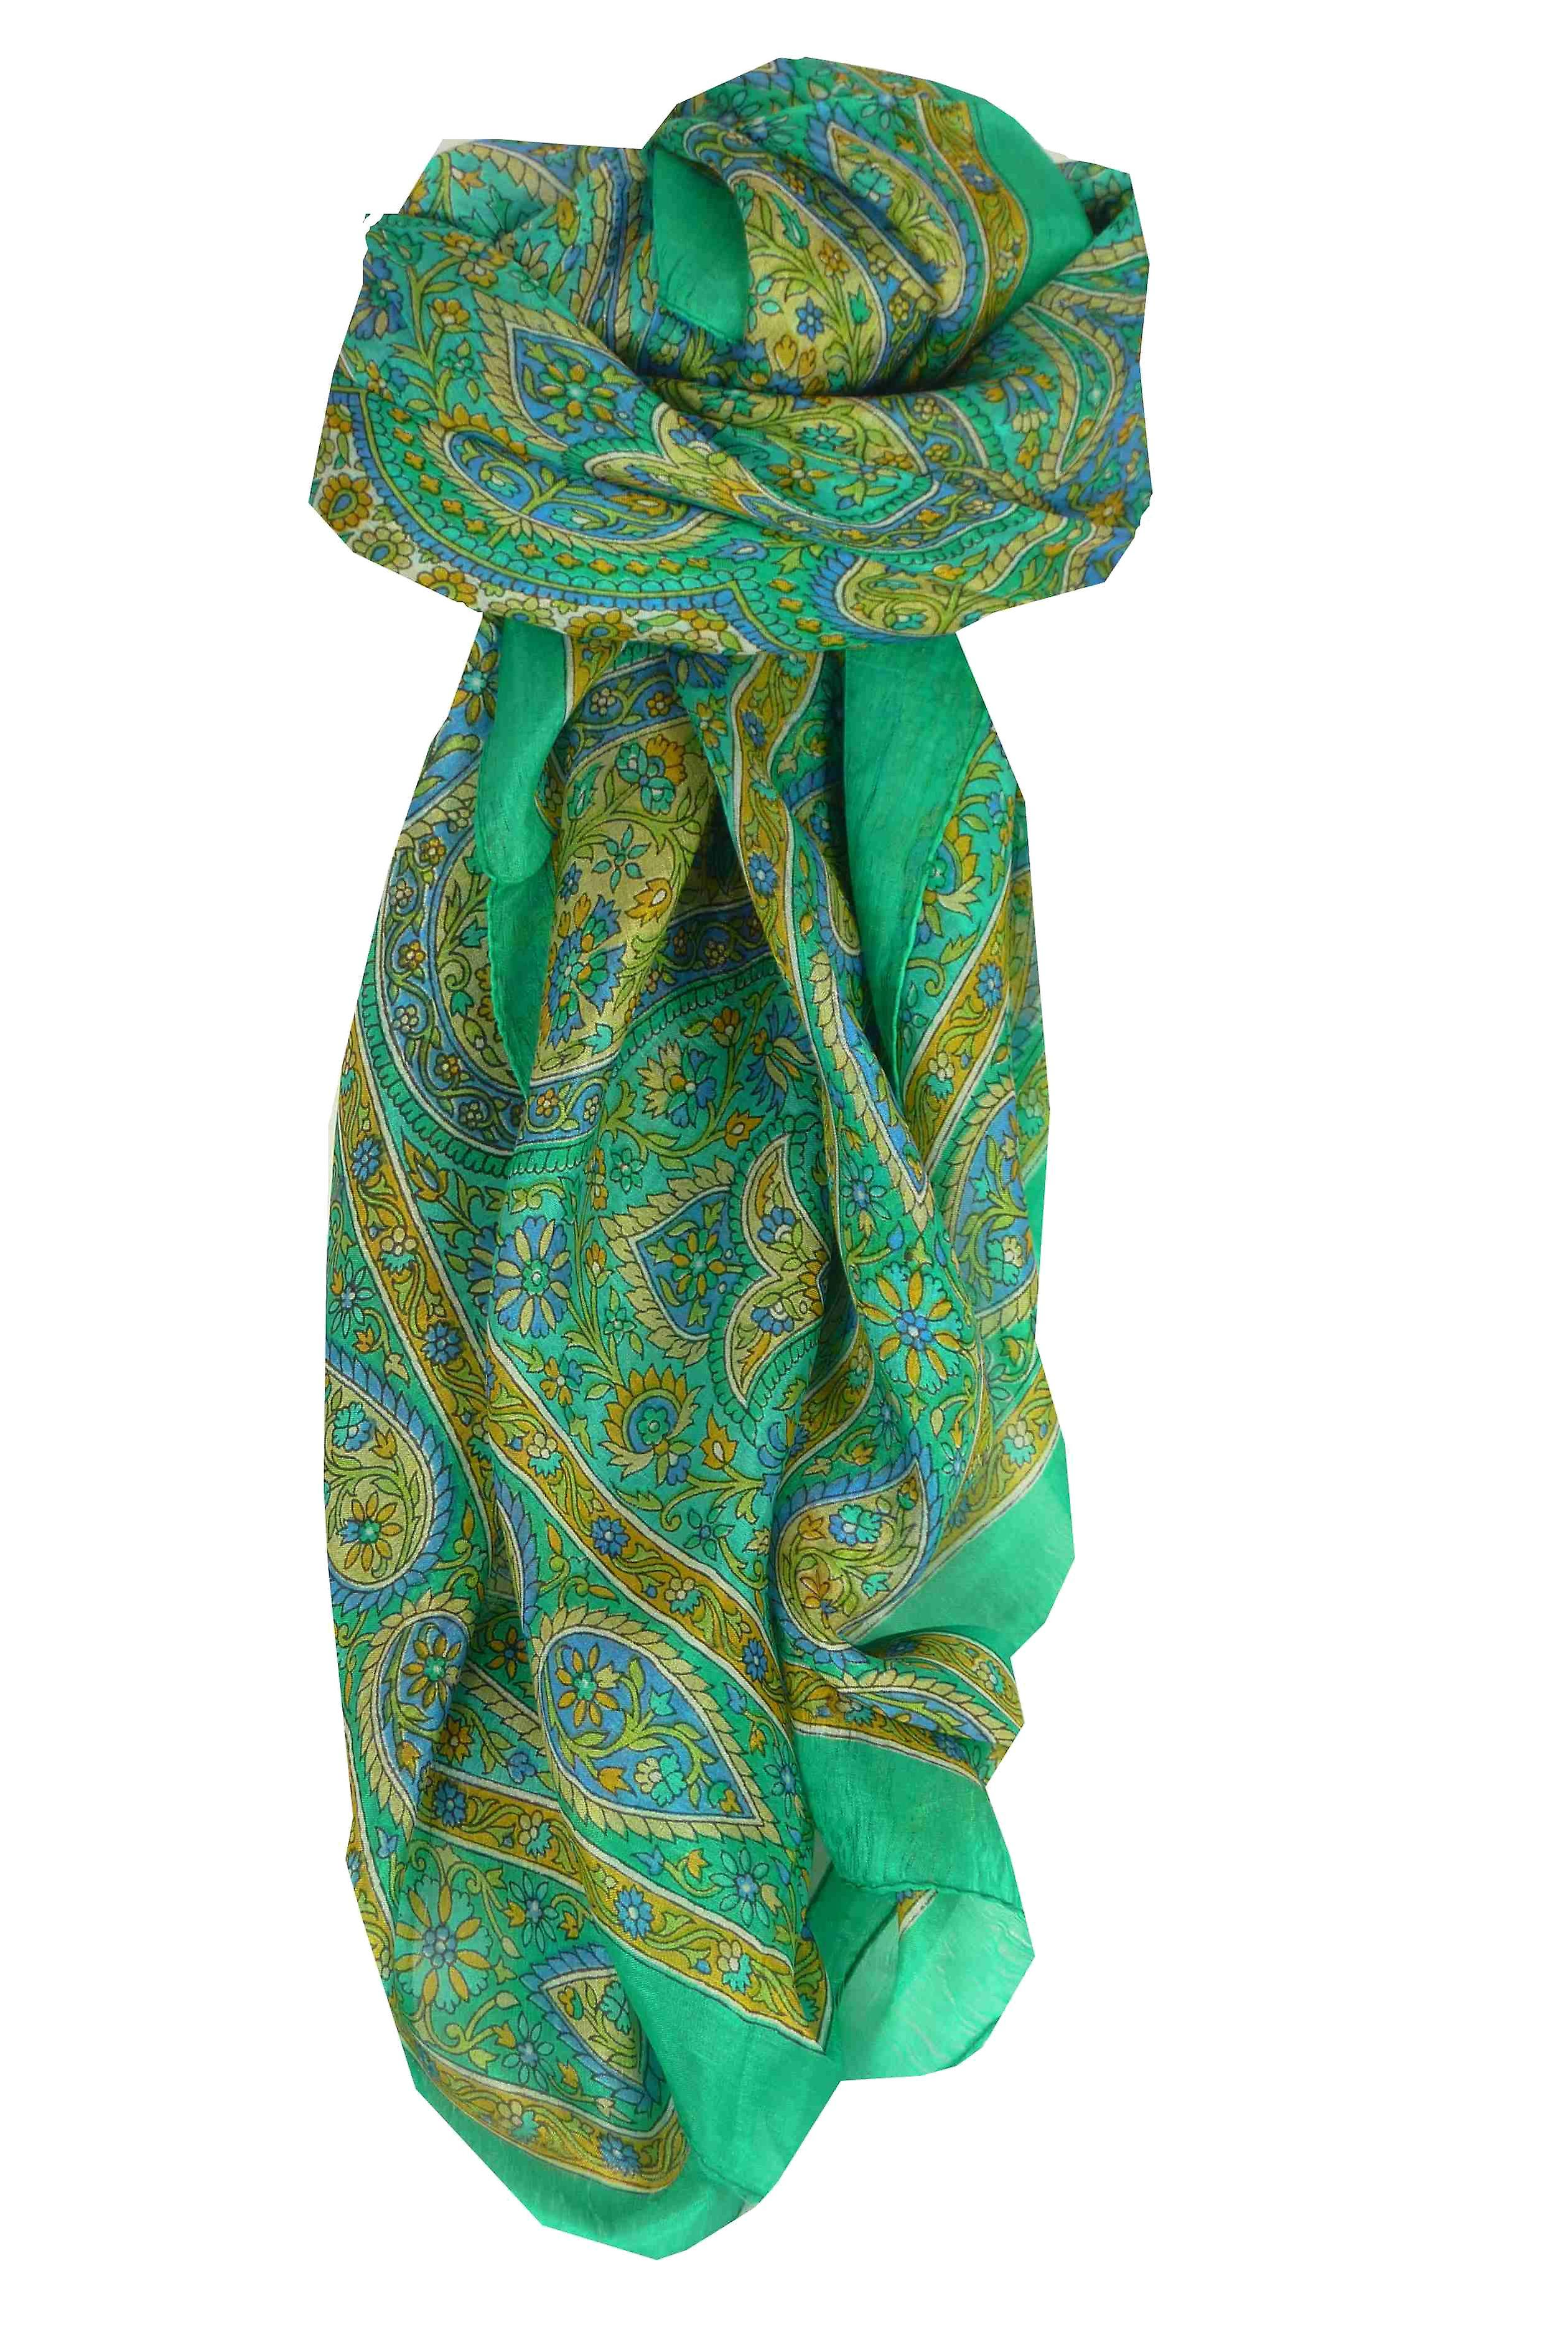 Mulberry Silk Traditional Square Scarf Amnat Teal by Pashmina & Silk